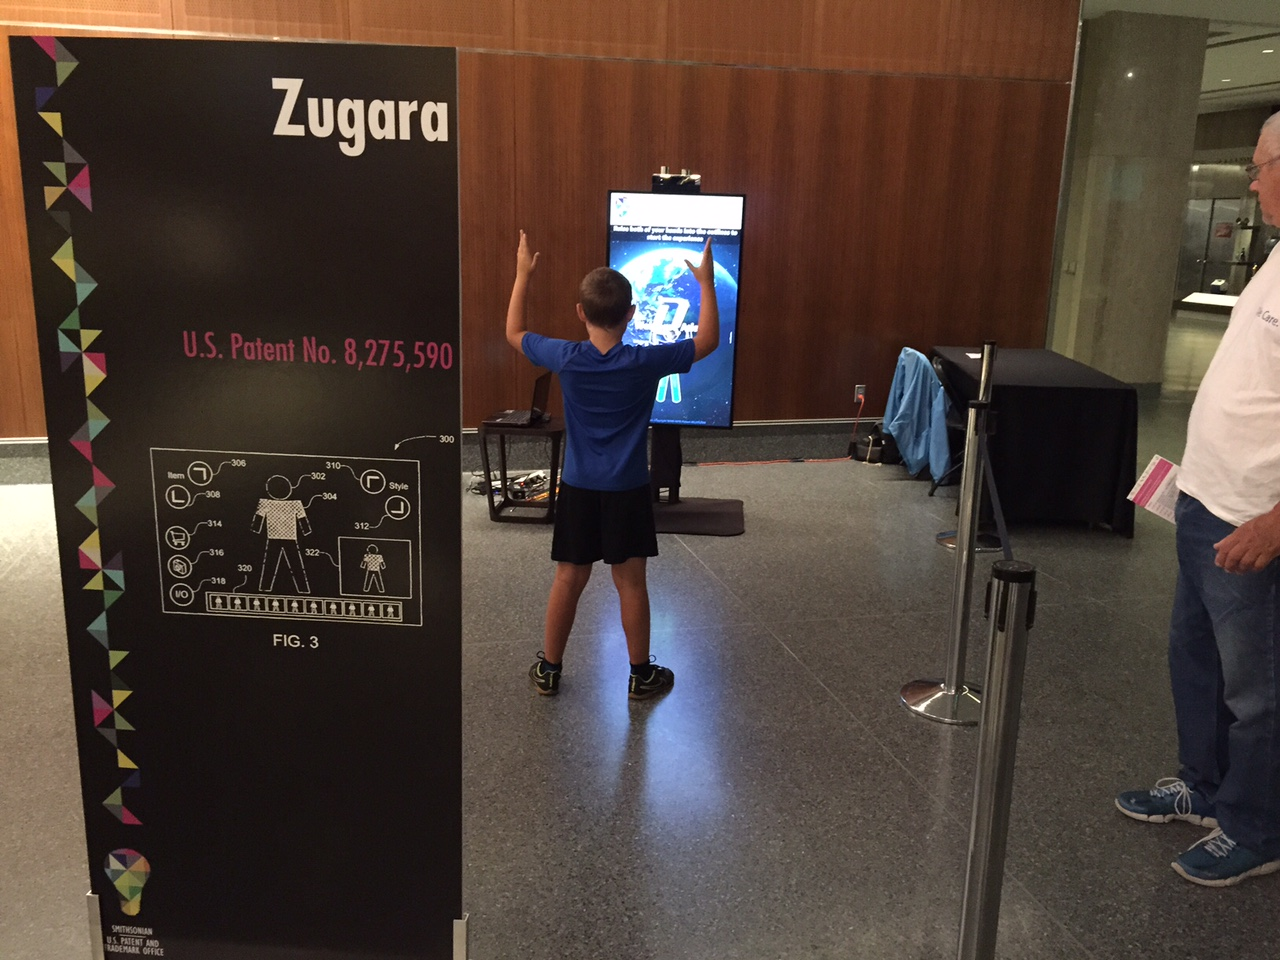 Zugara Augmented Reality Virtual Dressing Room Patent at Smithsonian